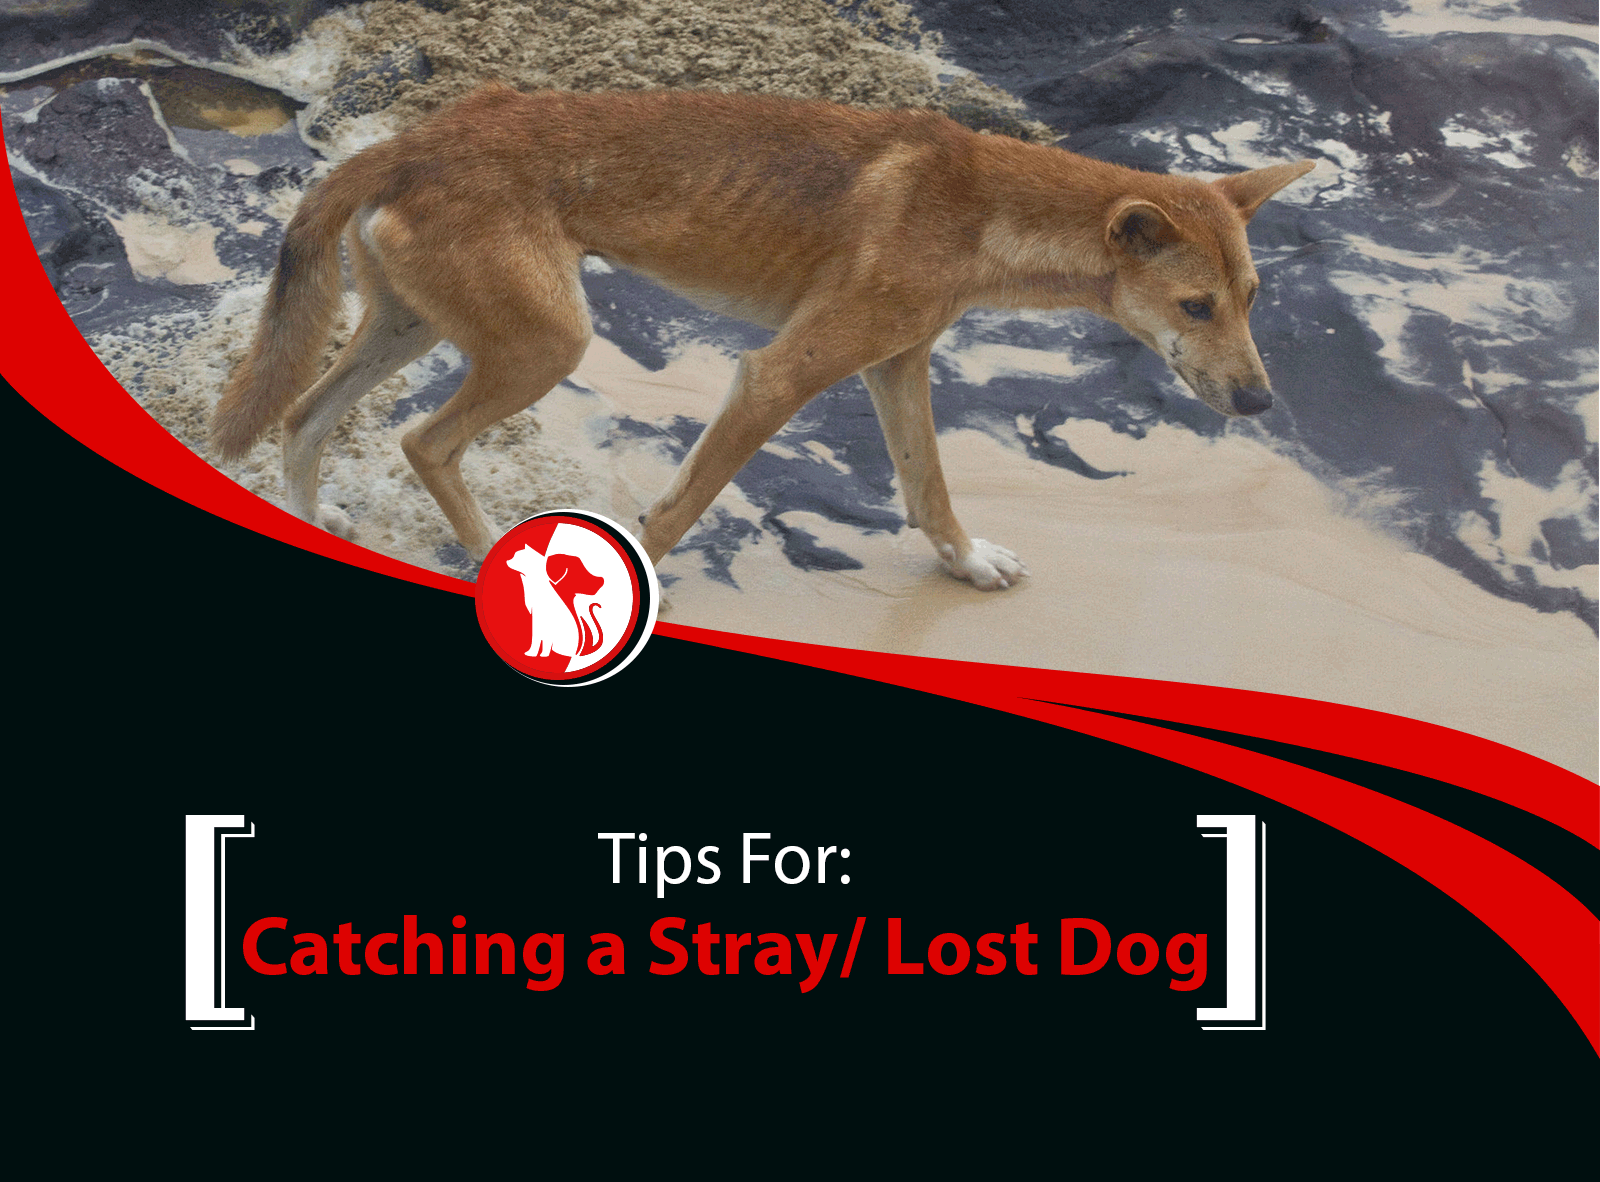 Tips for Catching a Stray/Lost Dog